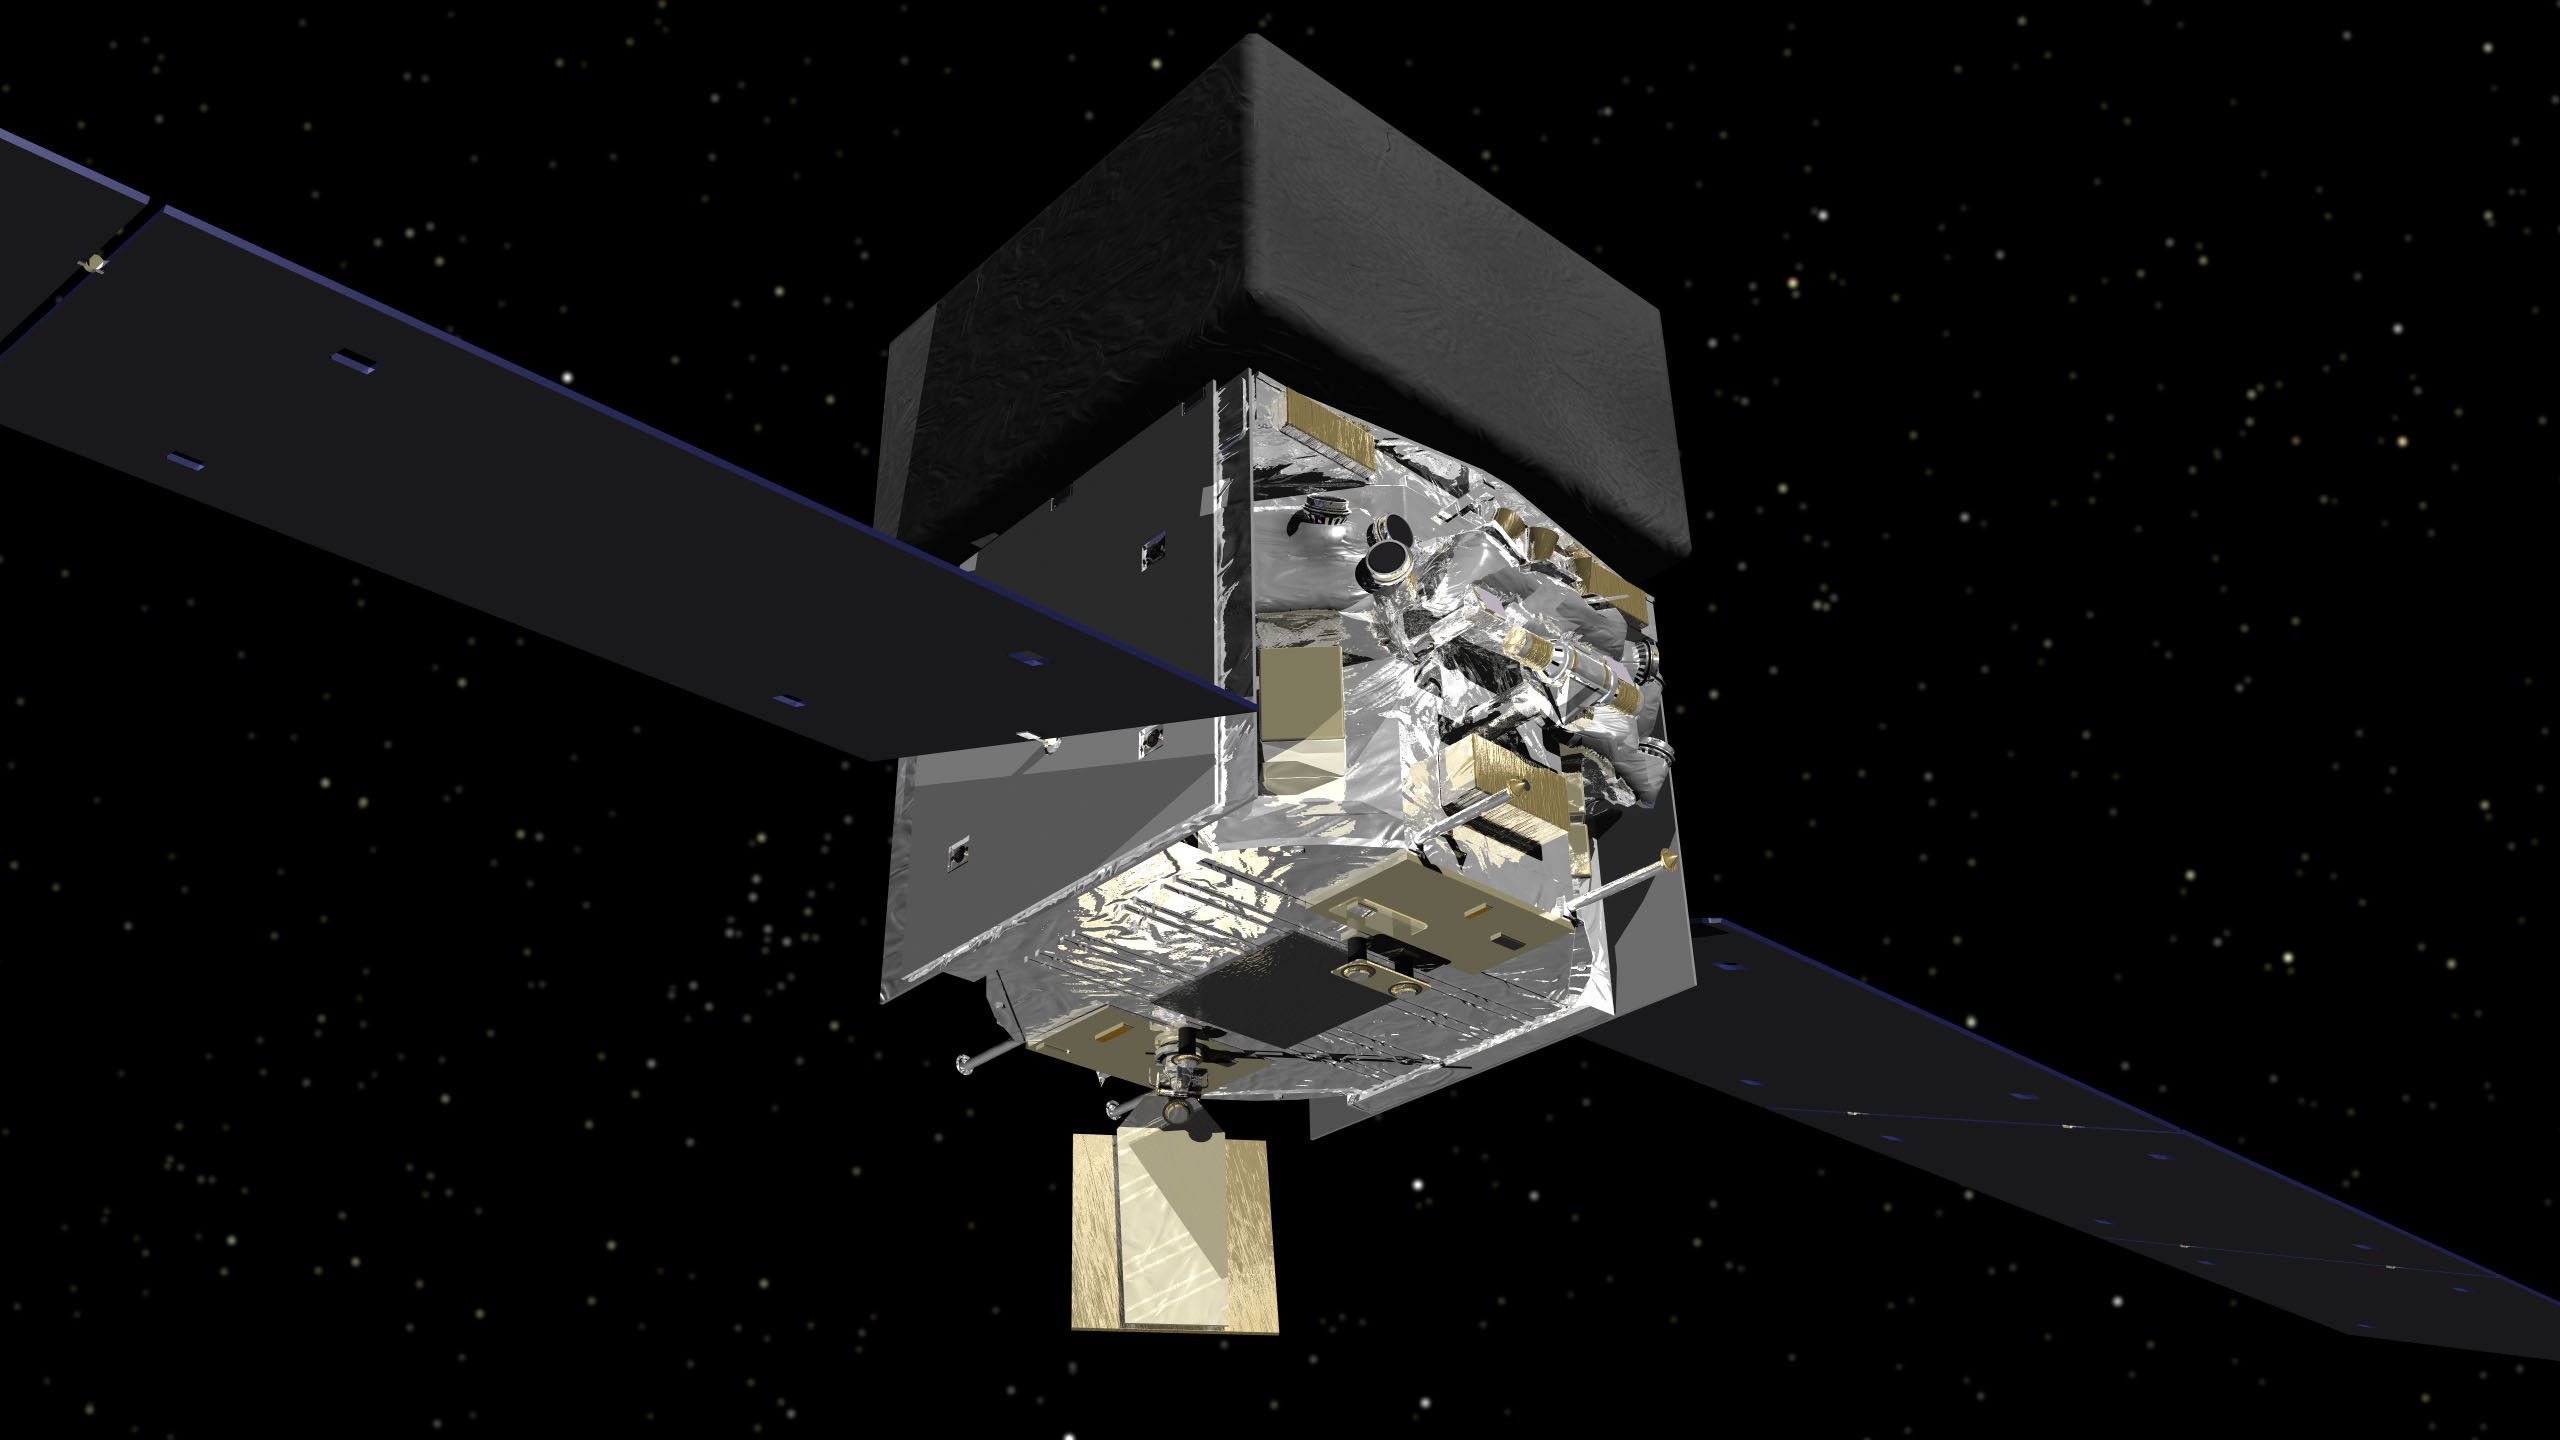 This computer graphic shows the structure of NASA's Fermi satellite. The central, box-shaped instrumentation platform lies between the solar panels. The Large Area Telescope, data from which the astronomers evaluated, is hidden beneath the black cover visible on the top.